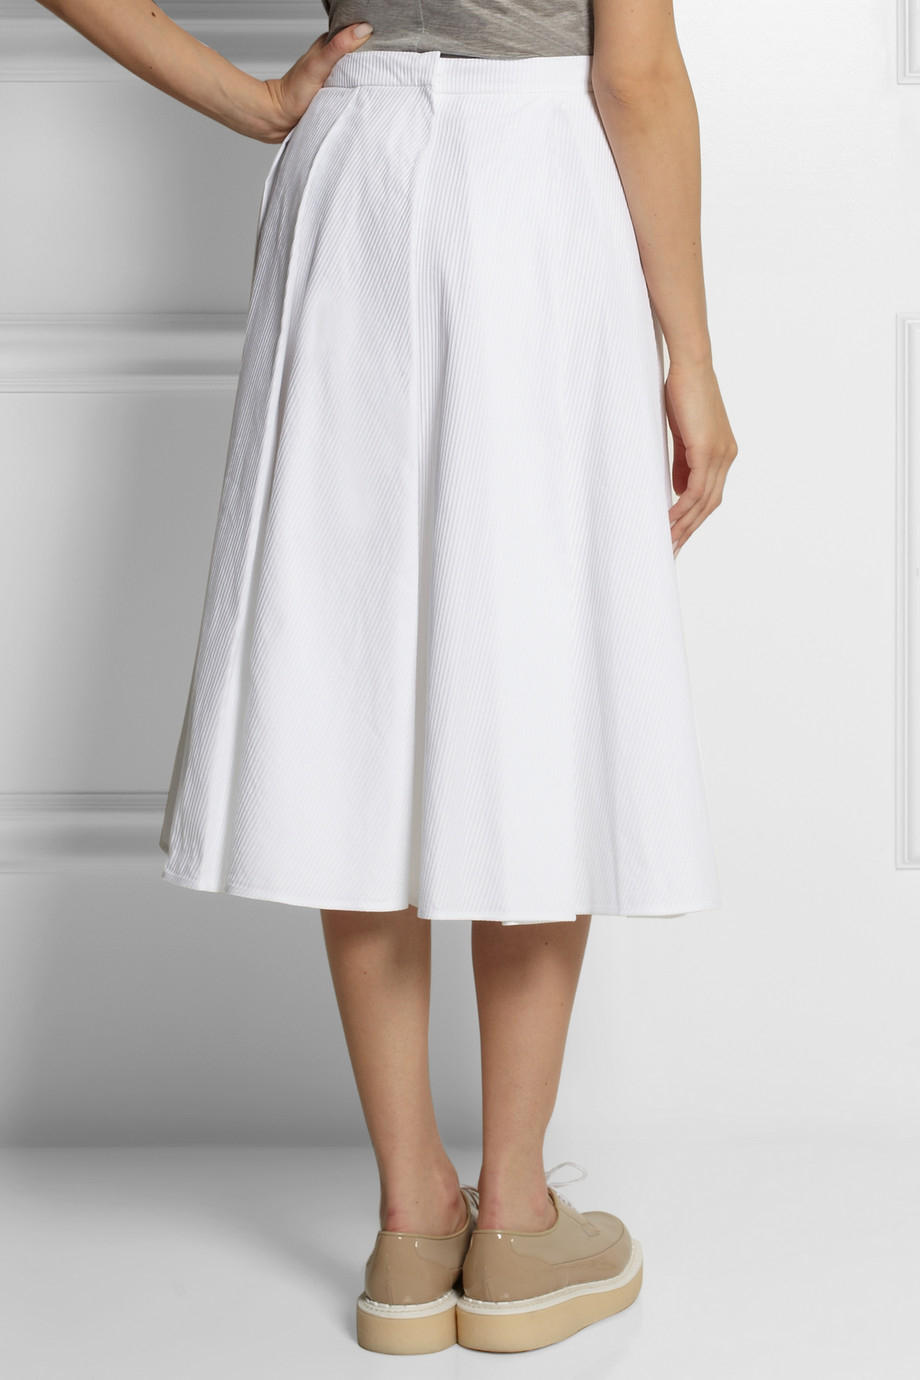 J.w.anderson Pleated Cotton-Jacquard Midi Skirt in White | Lyst